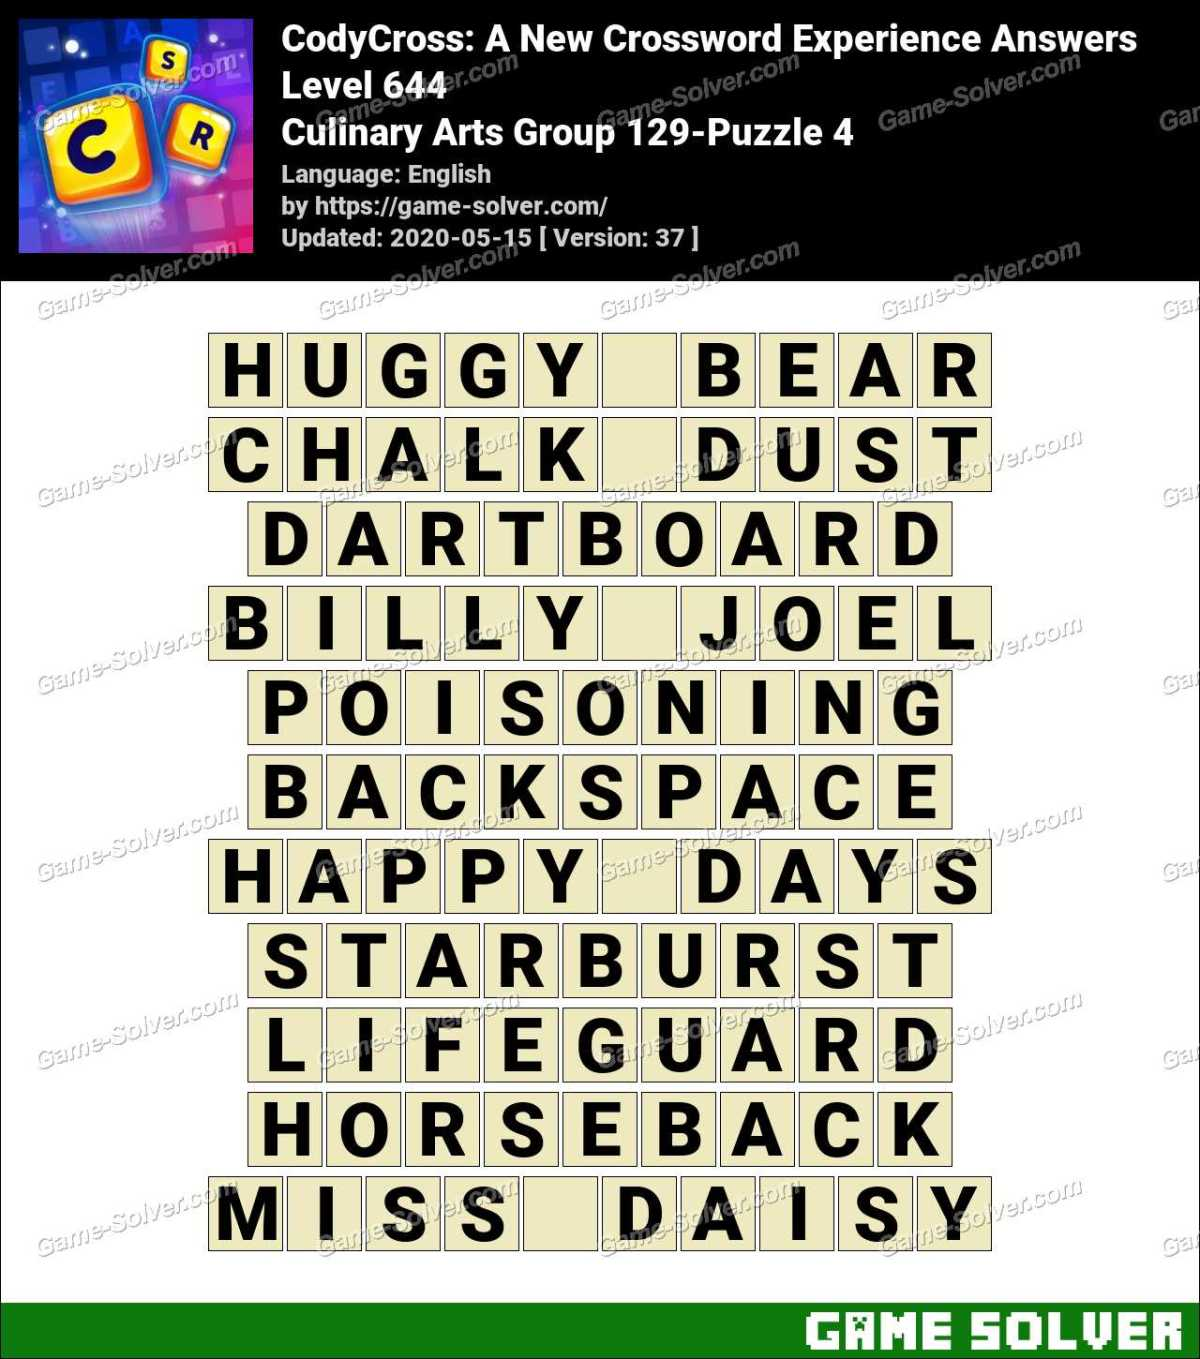 CodyCross Culinary Arts Group 129-Puzzle 4 Answers